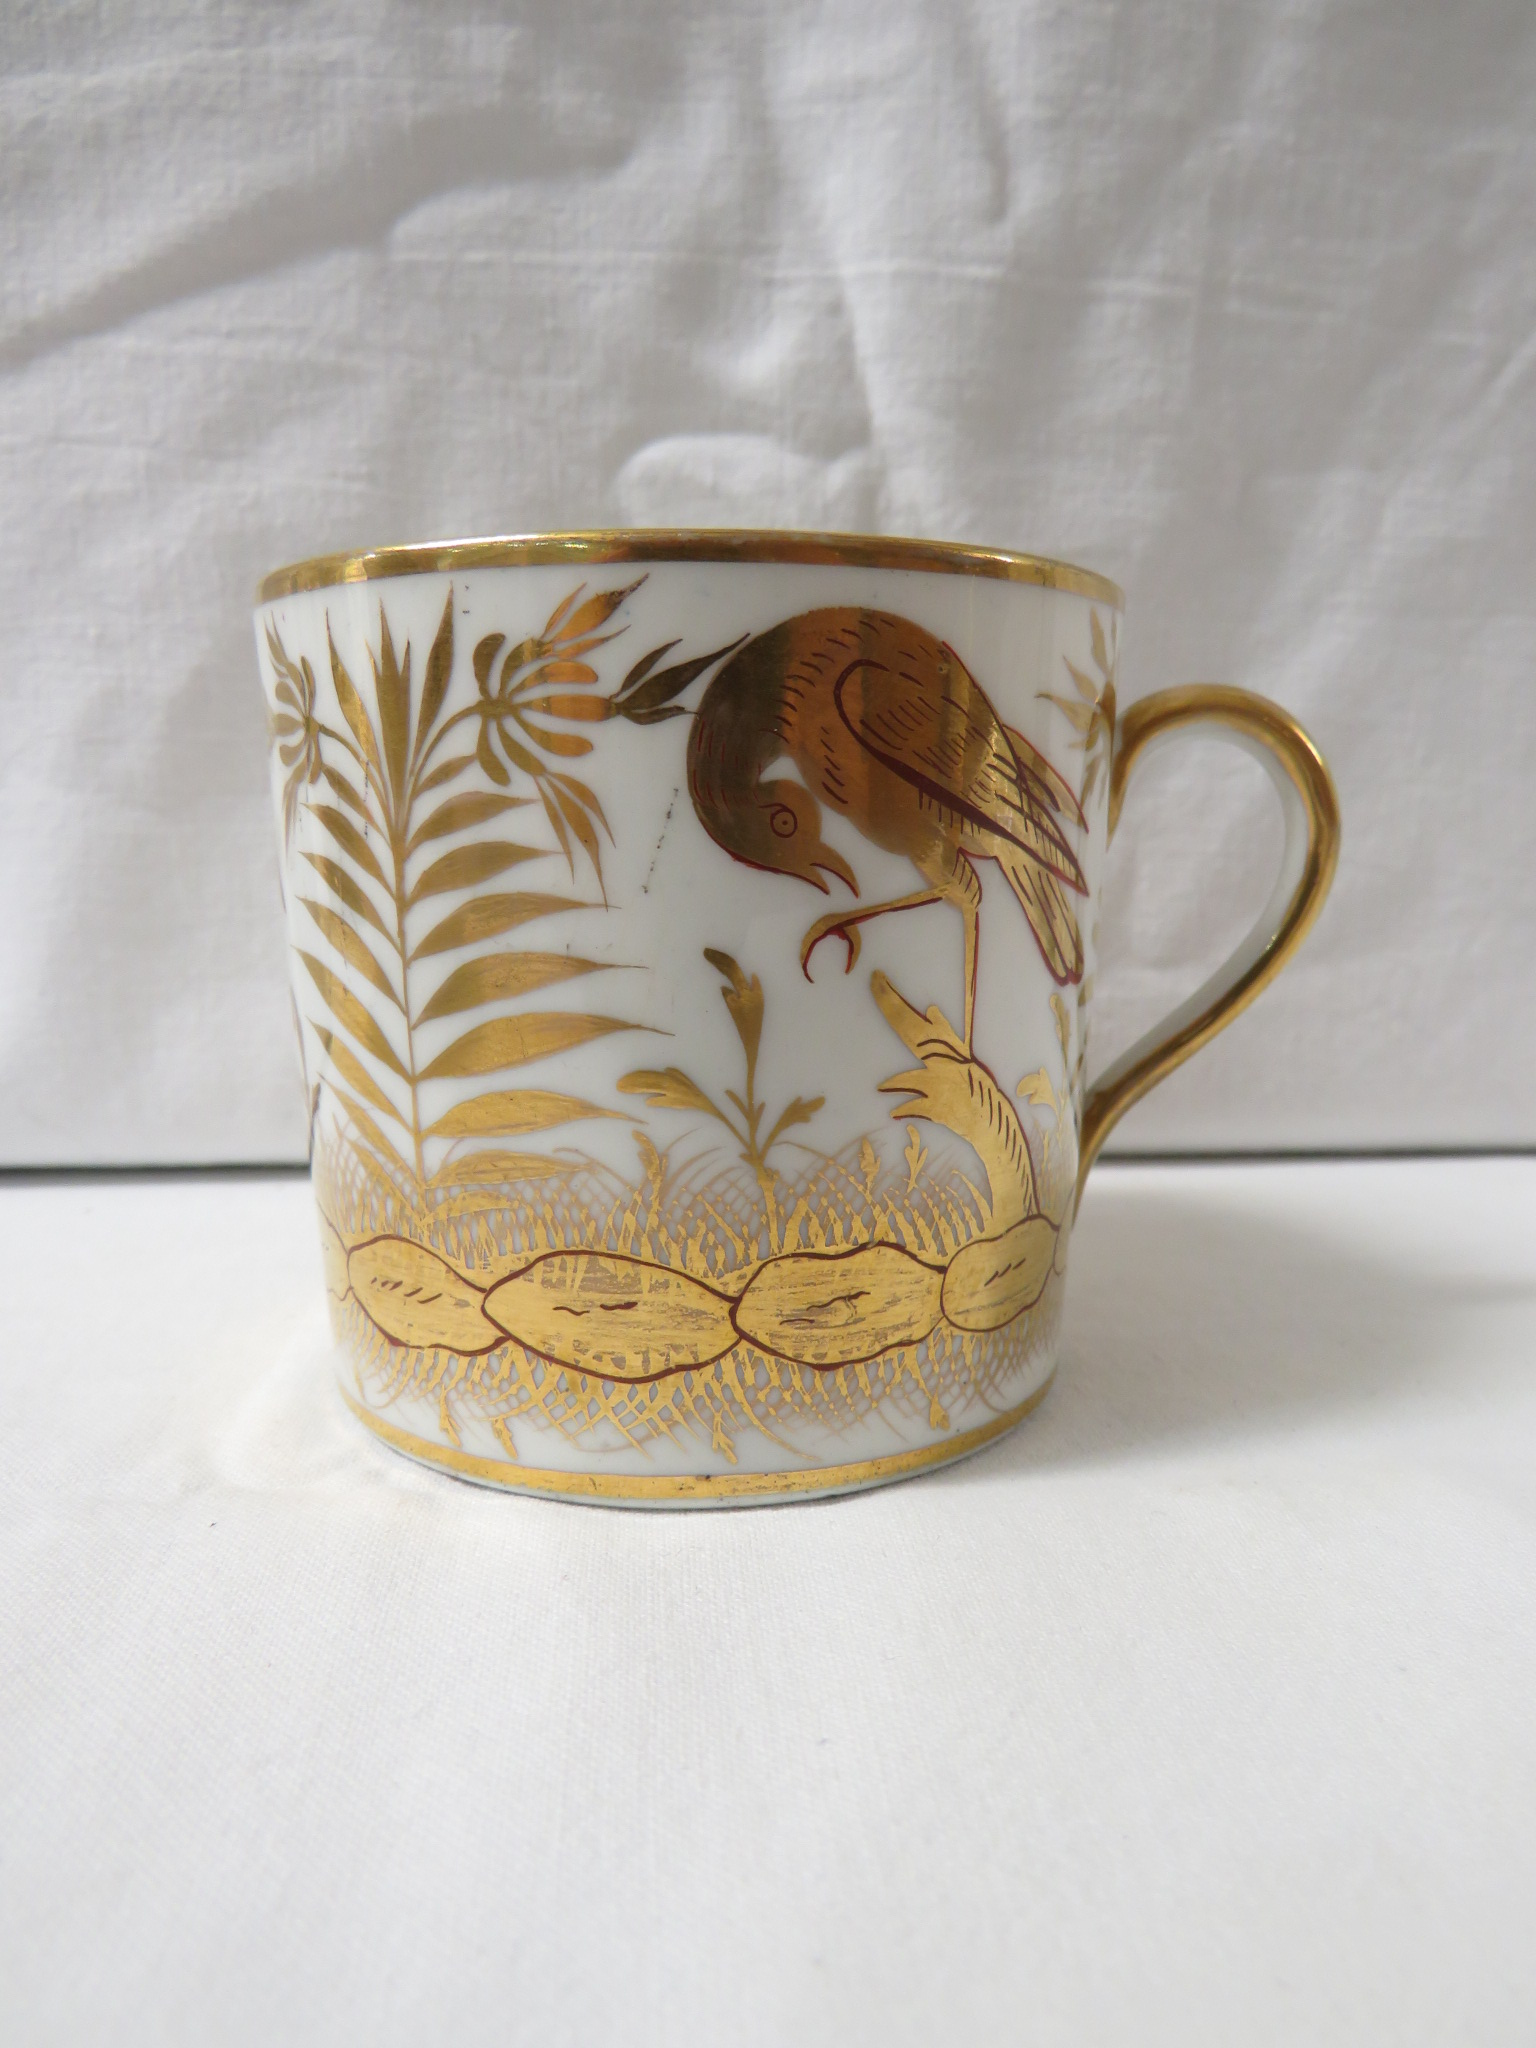 Lot 45 - A 19th century porcelain cup and saucer gilded with birds and flowers